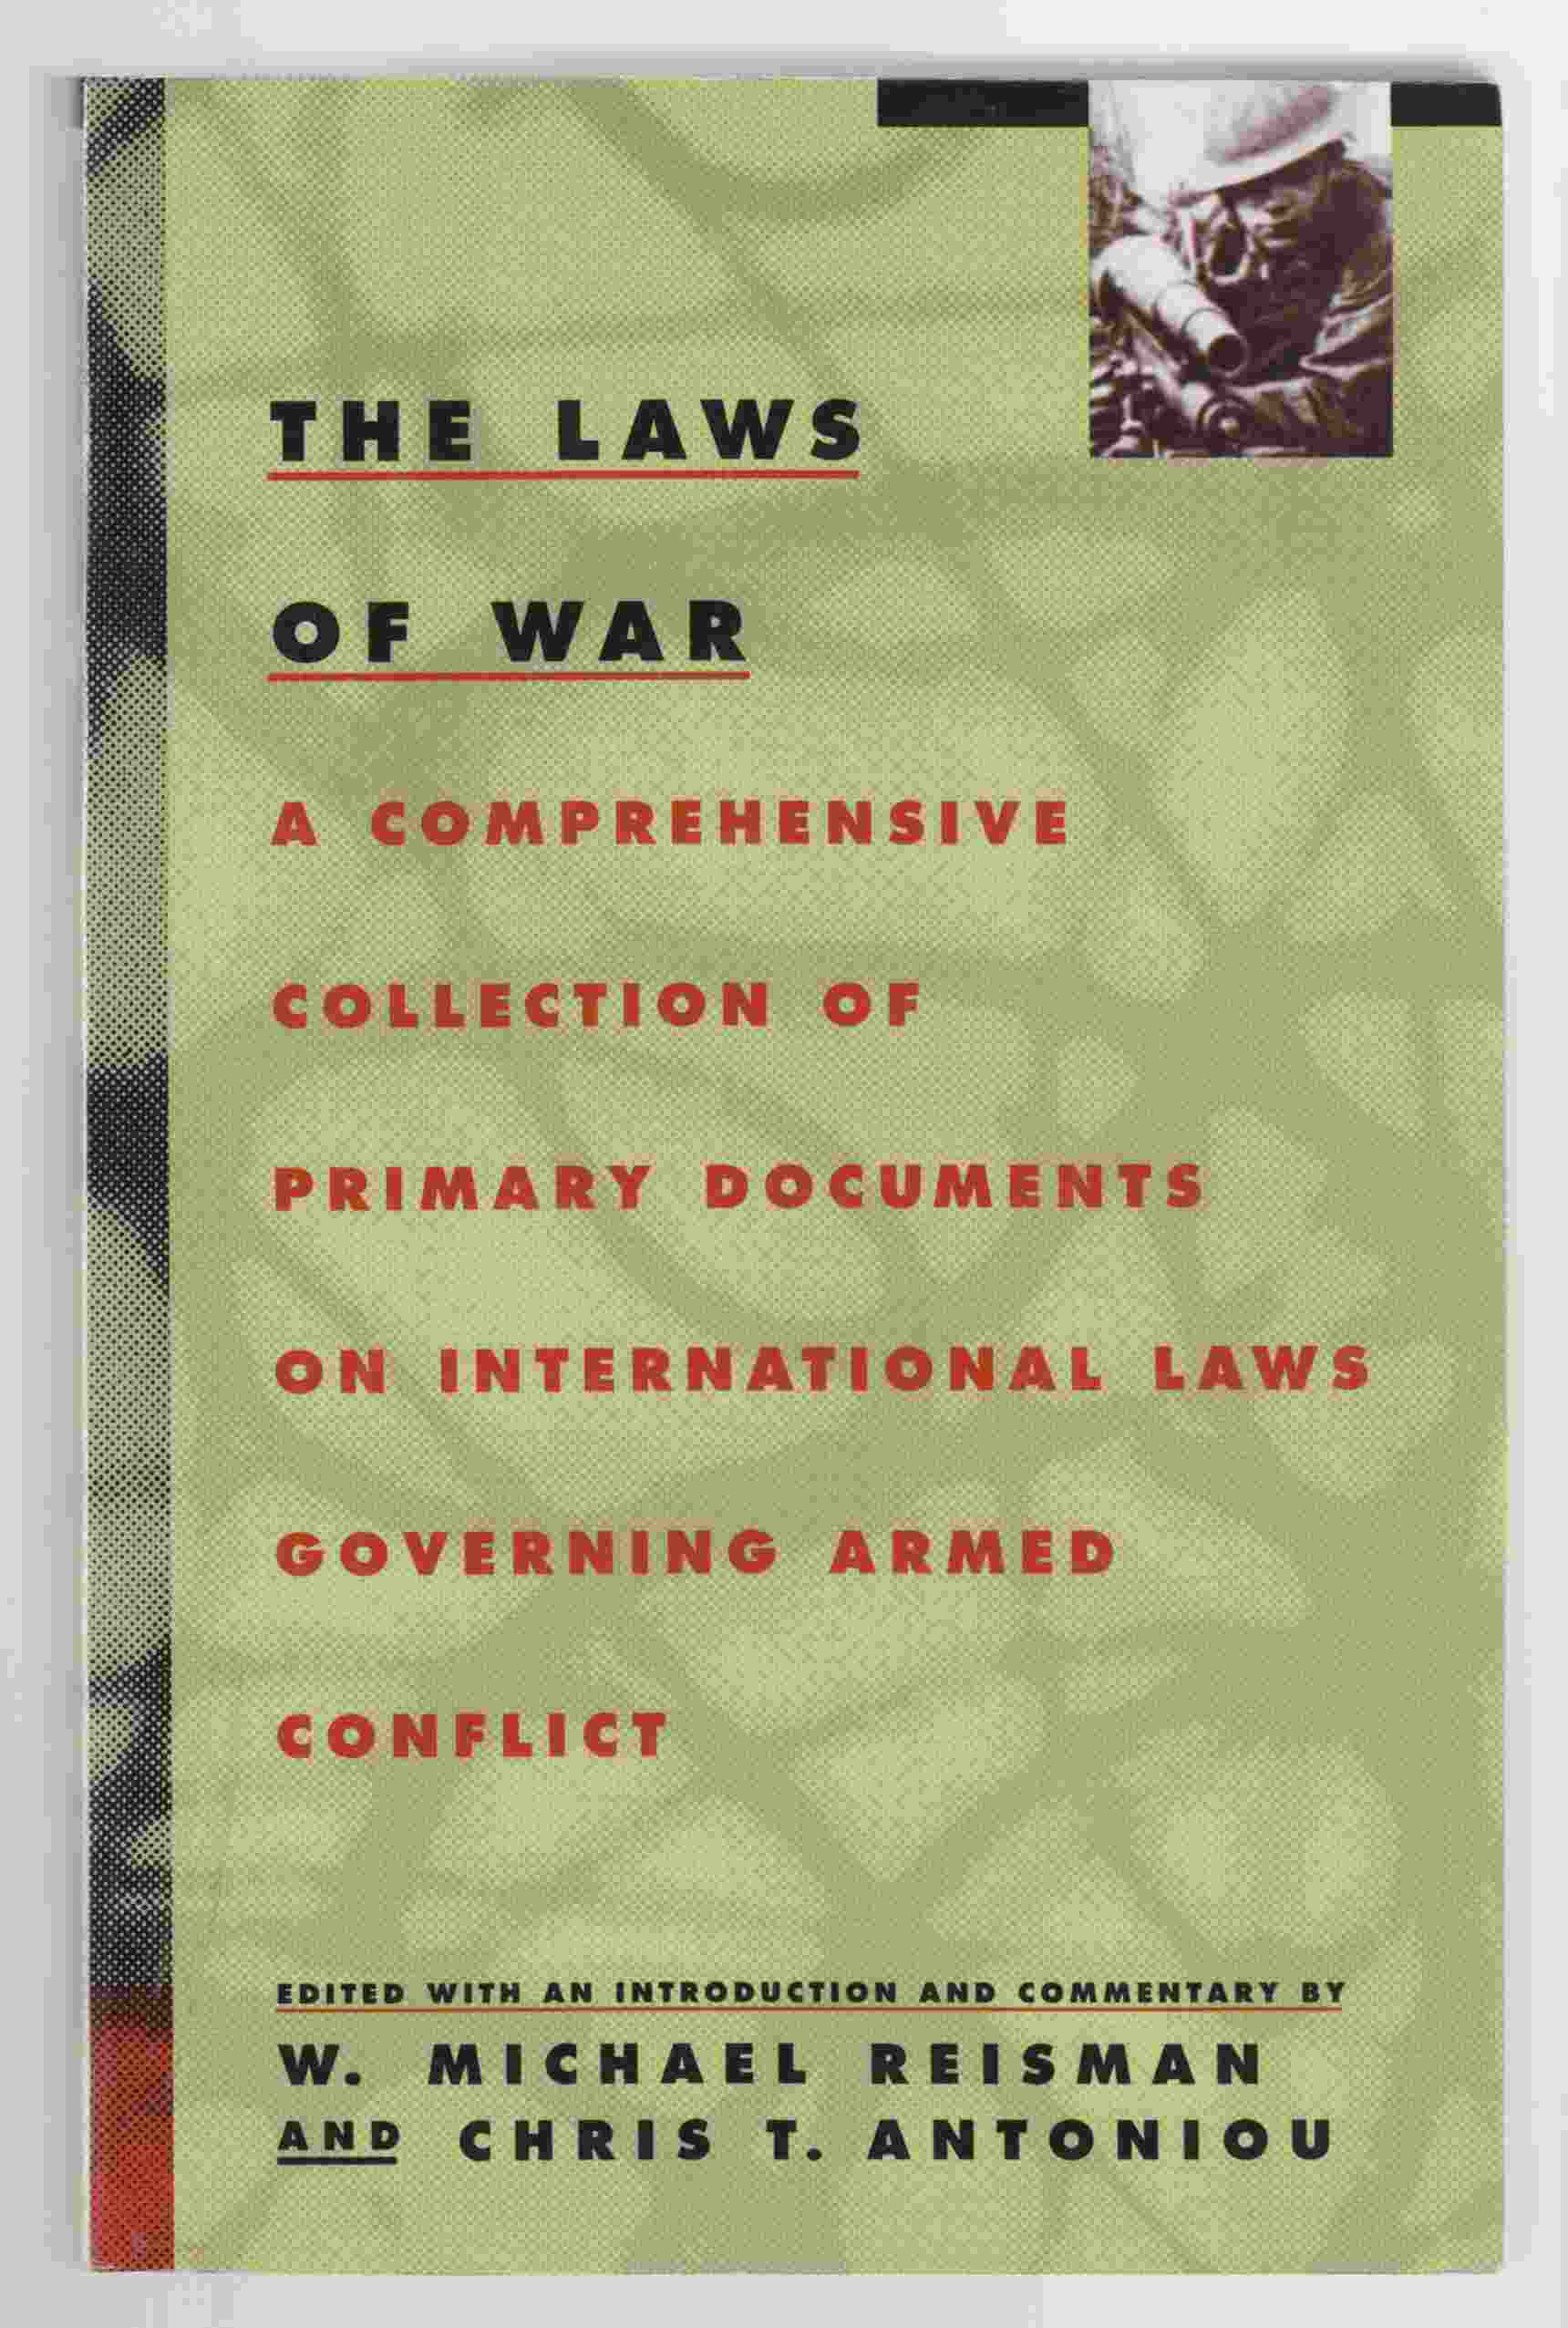 Image for The Laws of War A Comprehensive Collection of Primary Documents on International Laws Governing Armed Conflict